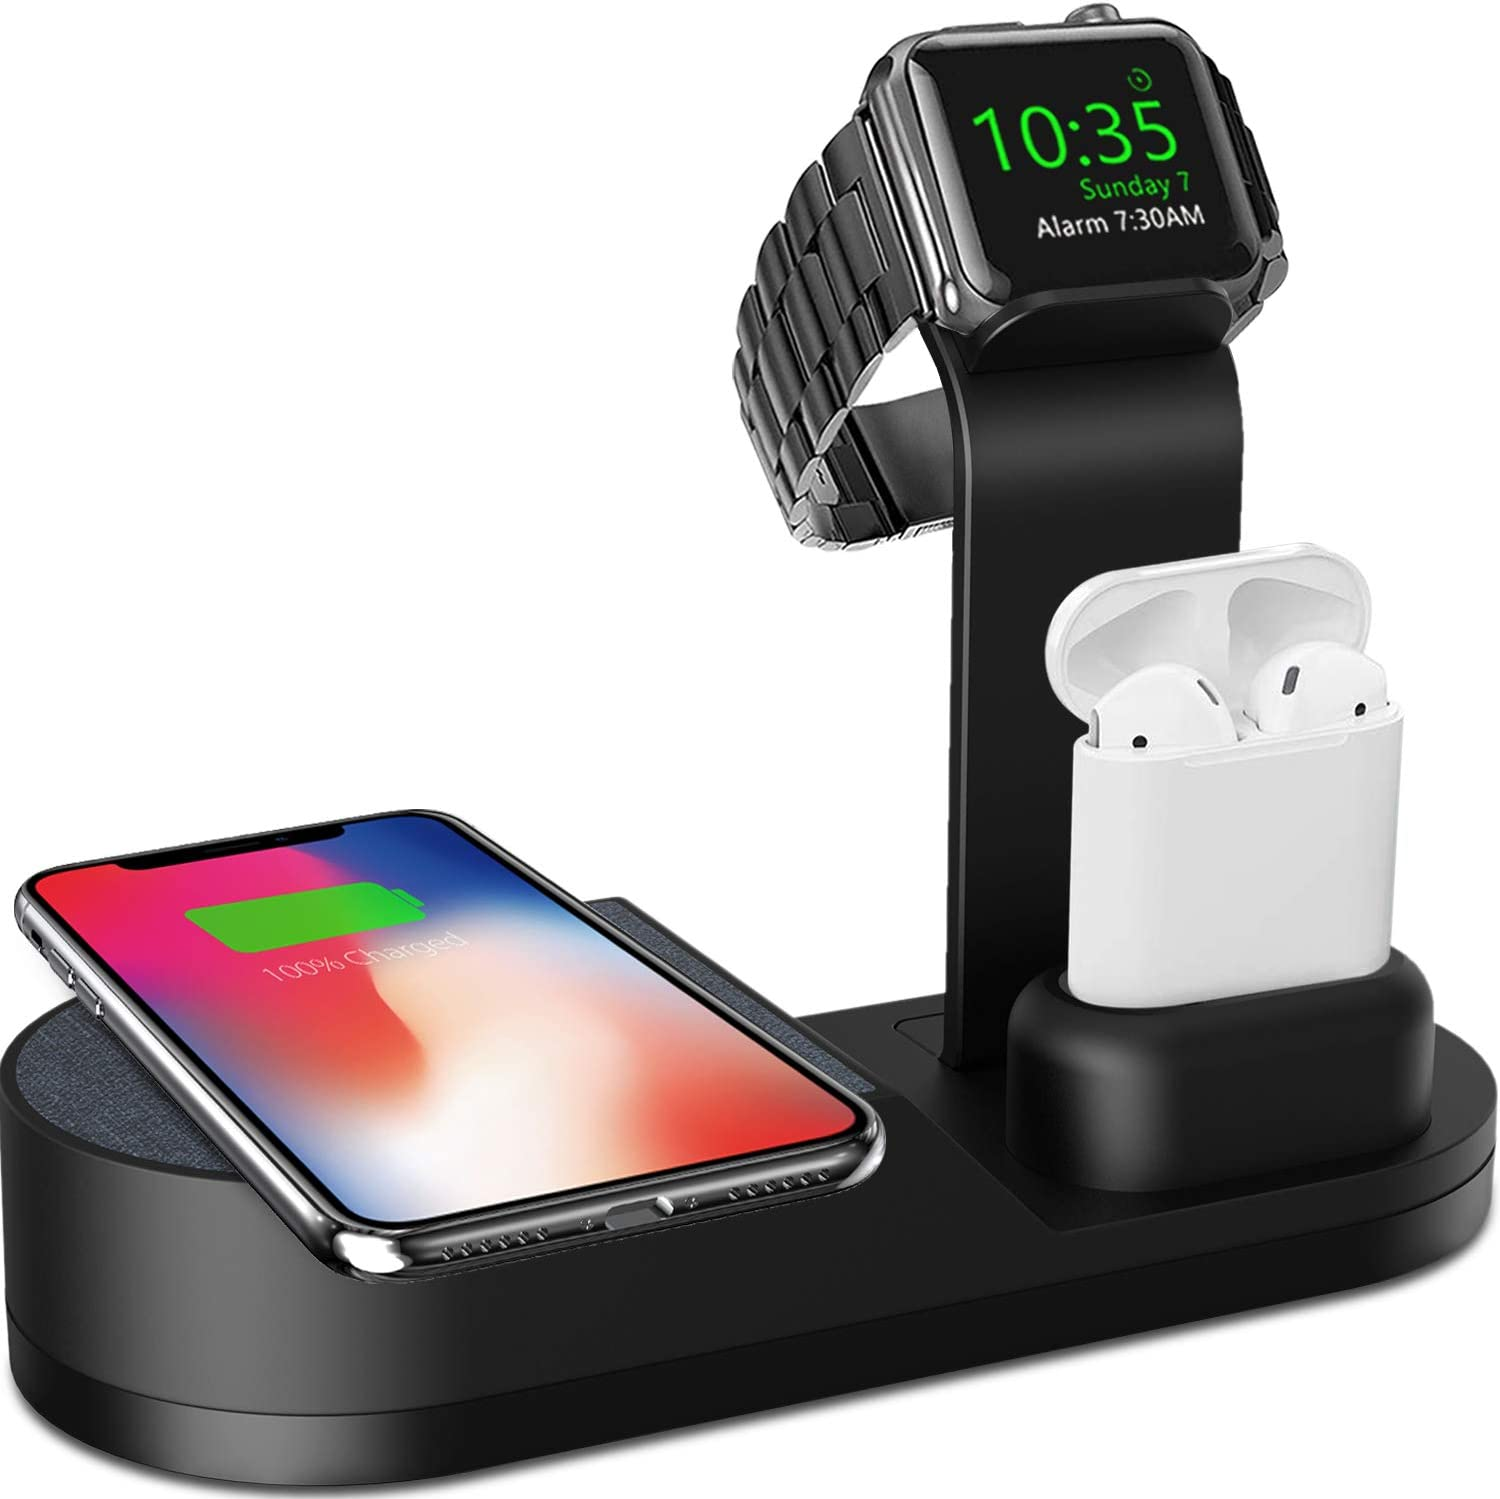 Deszon Wireless Charger Designed for Apple Watch Stand Compatible with Apple Watch Series 5 4 3 2 1, AirPods 1 Airpods 2 and iPhone 11 11 pro 11 Pro Max Xs X Max XR X 8 8Plus (No Adapter) Black